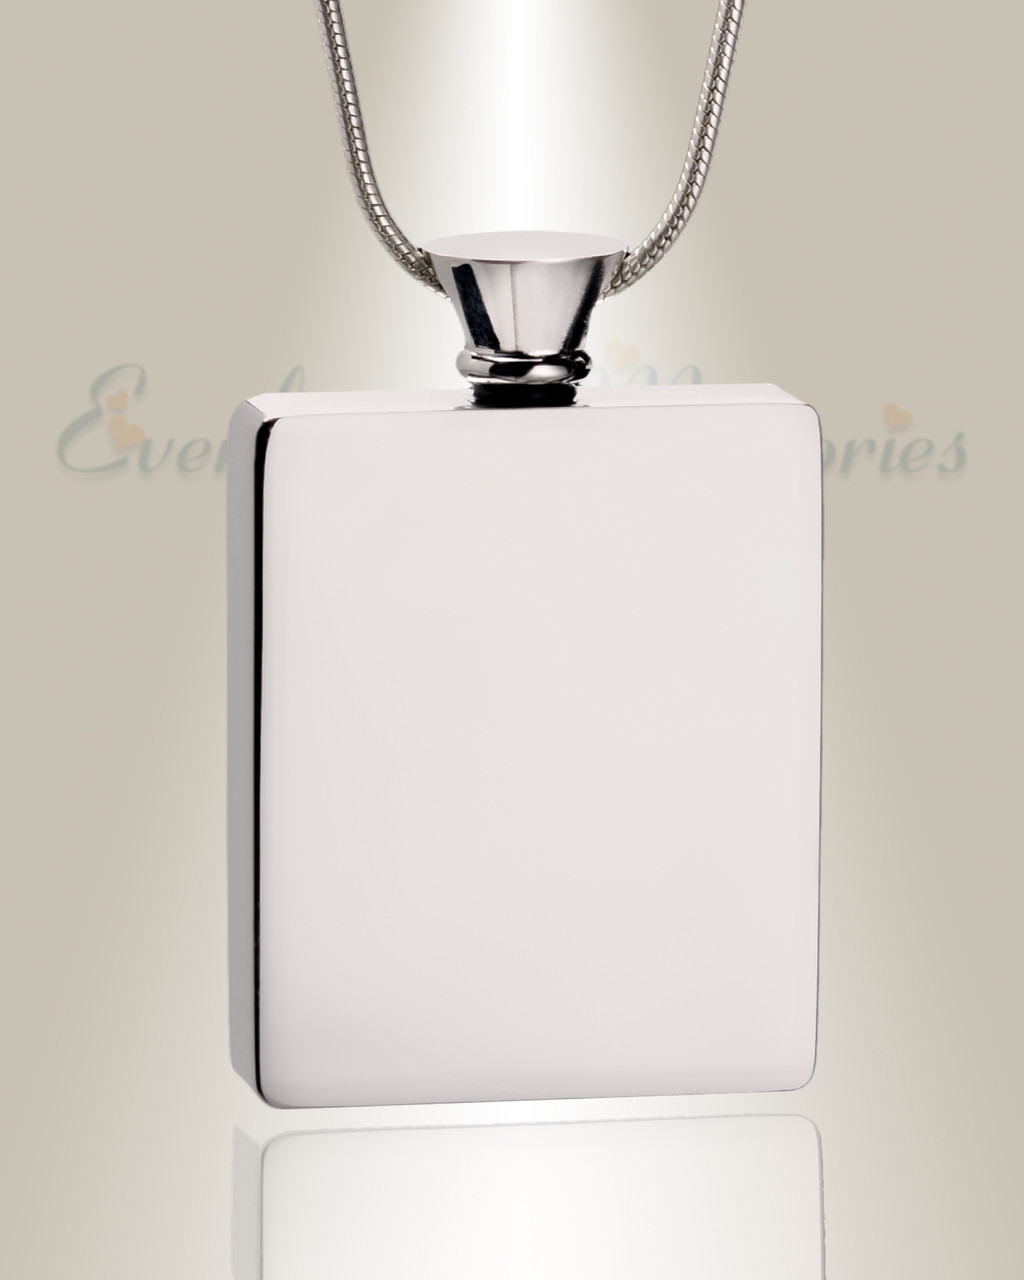 urn pendant in urns light embrace cremation stainless steel jewelry eternal the